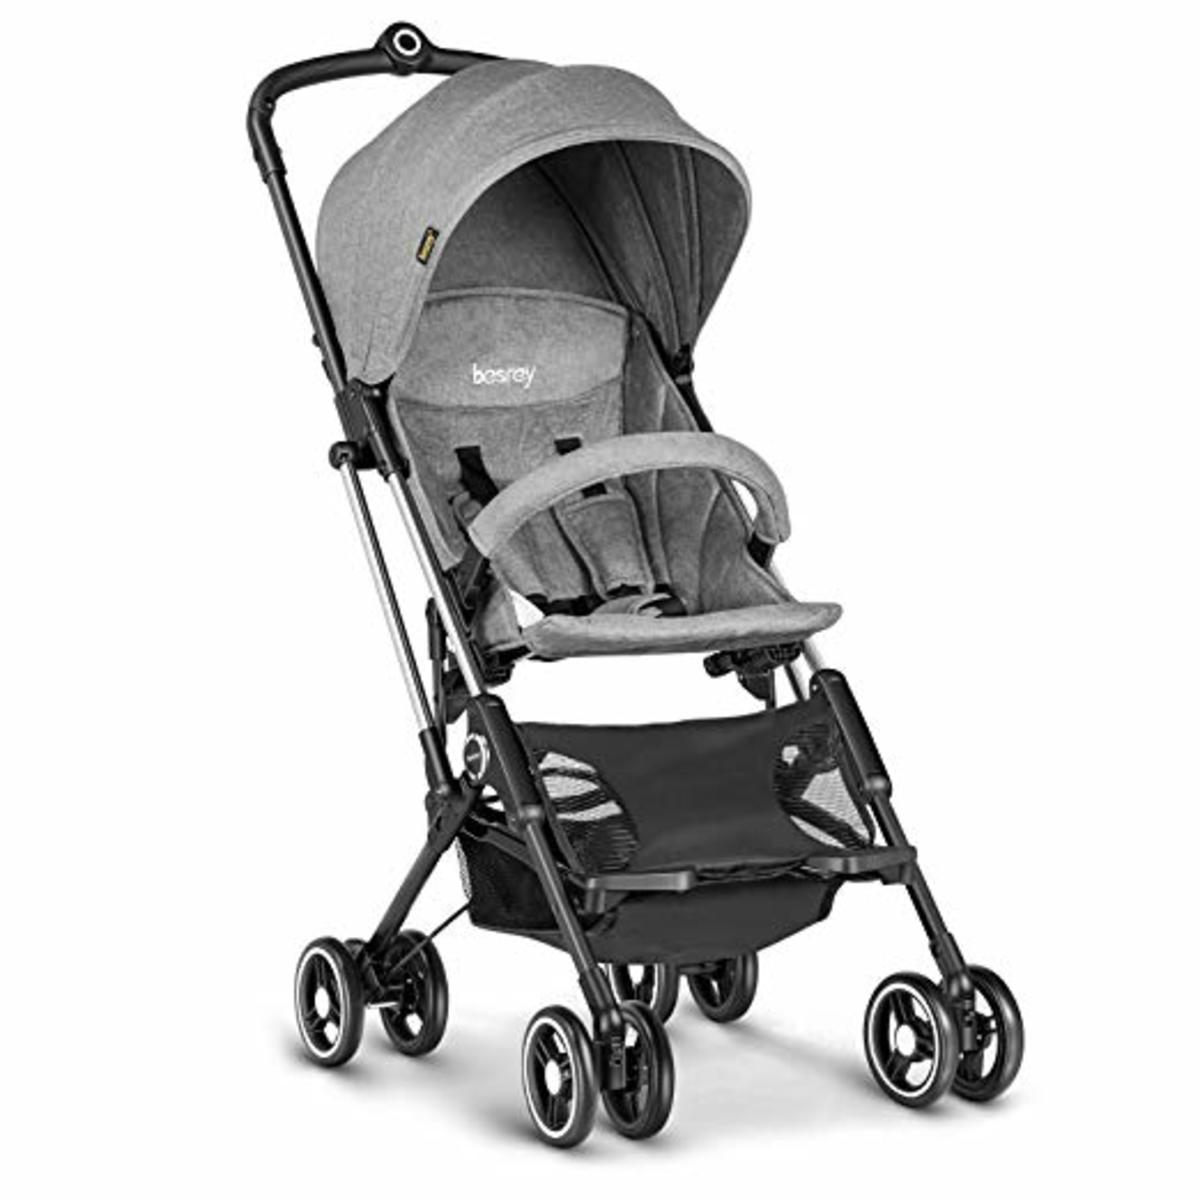 Besrey Airplane Stroller in Gray Color